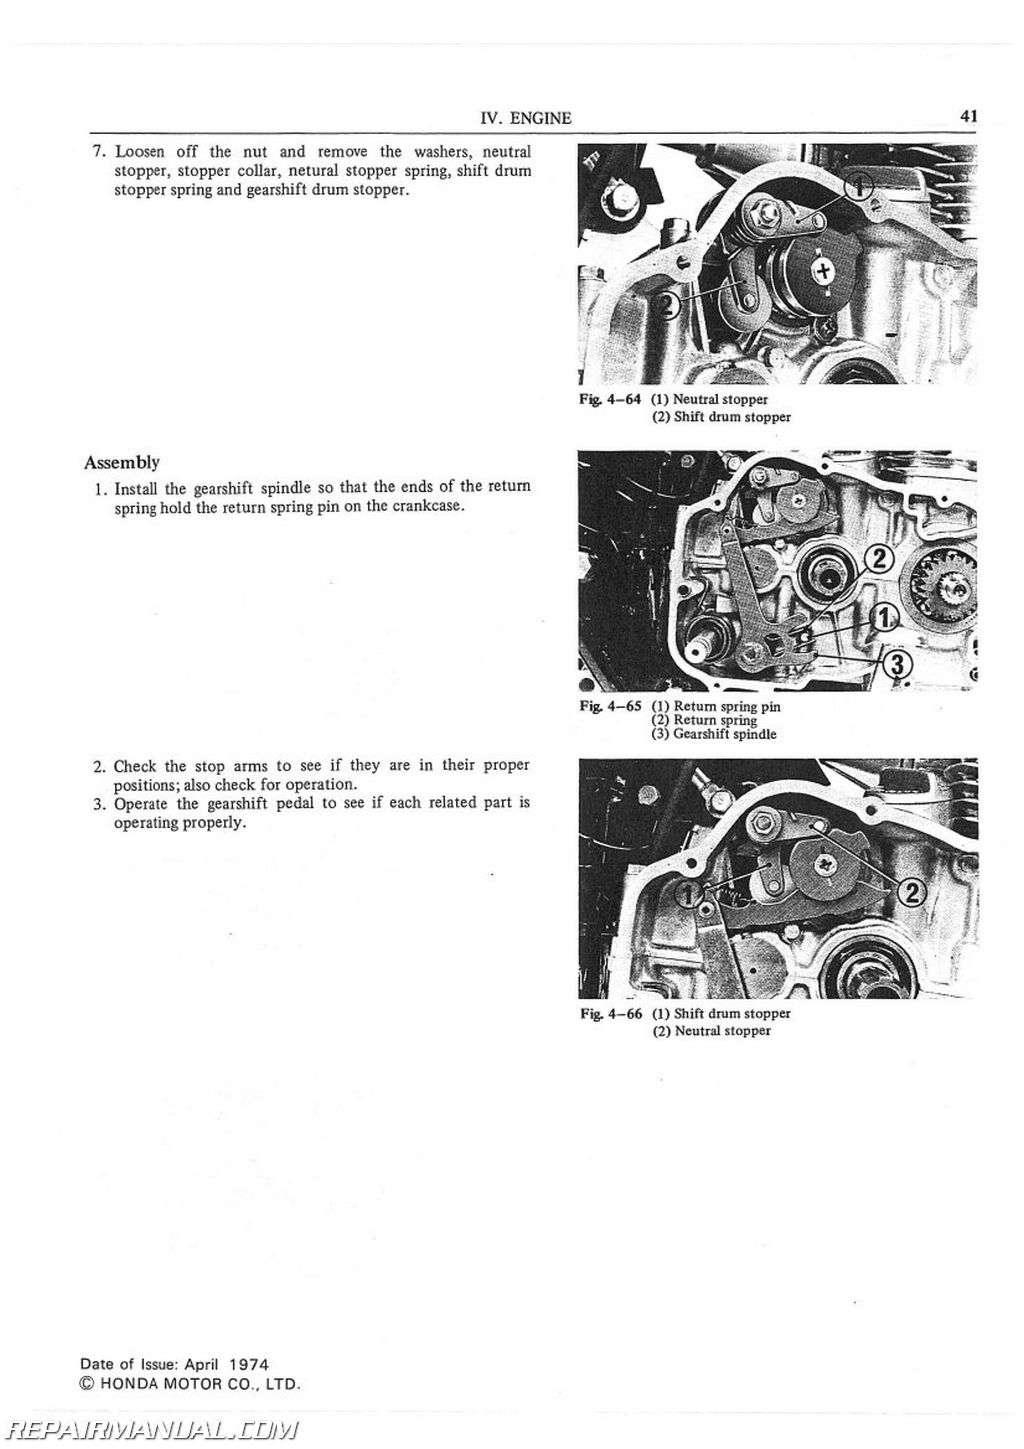 1975-1976 Honda CB500T Motorcycle Service Manual